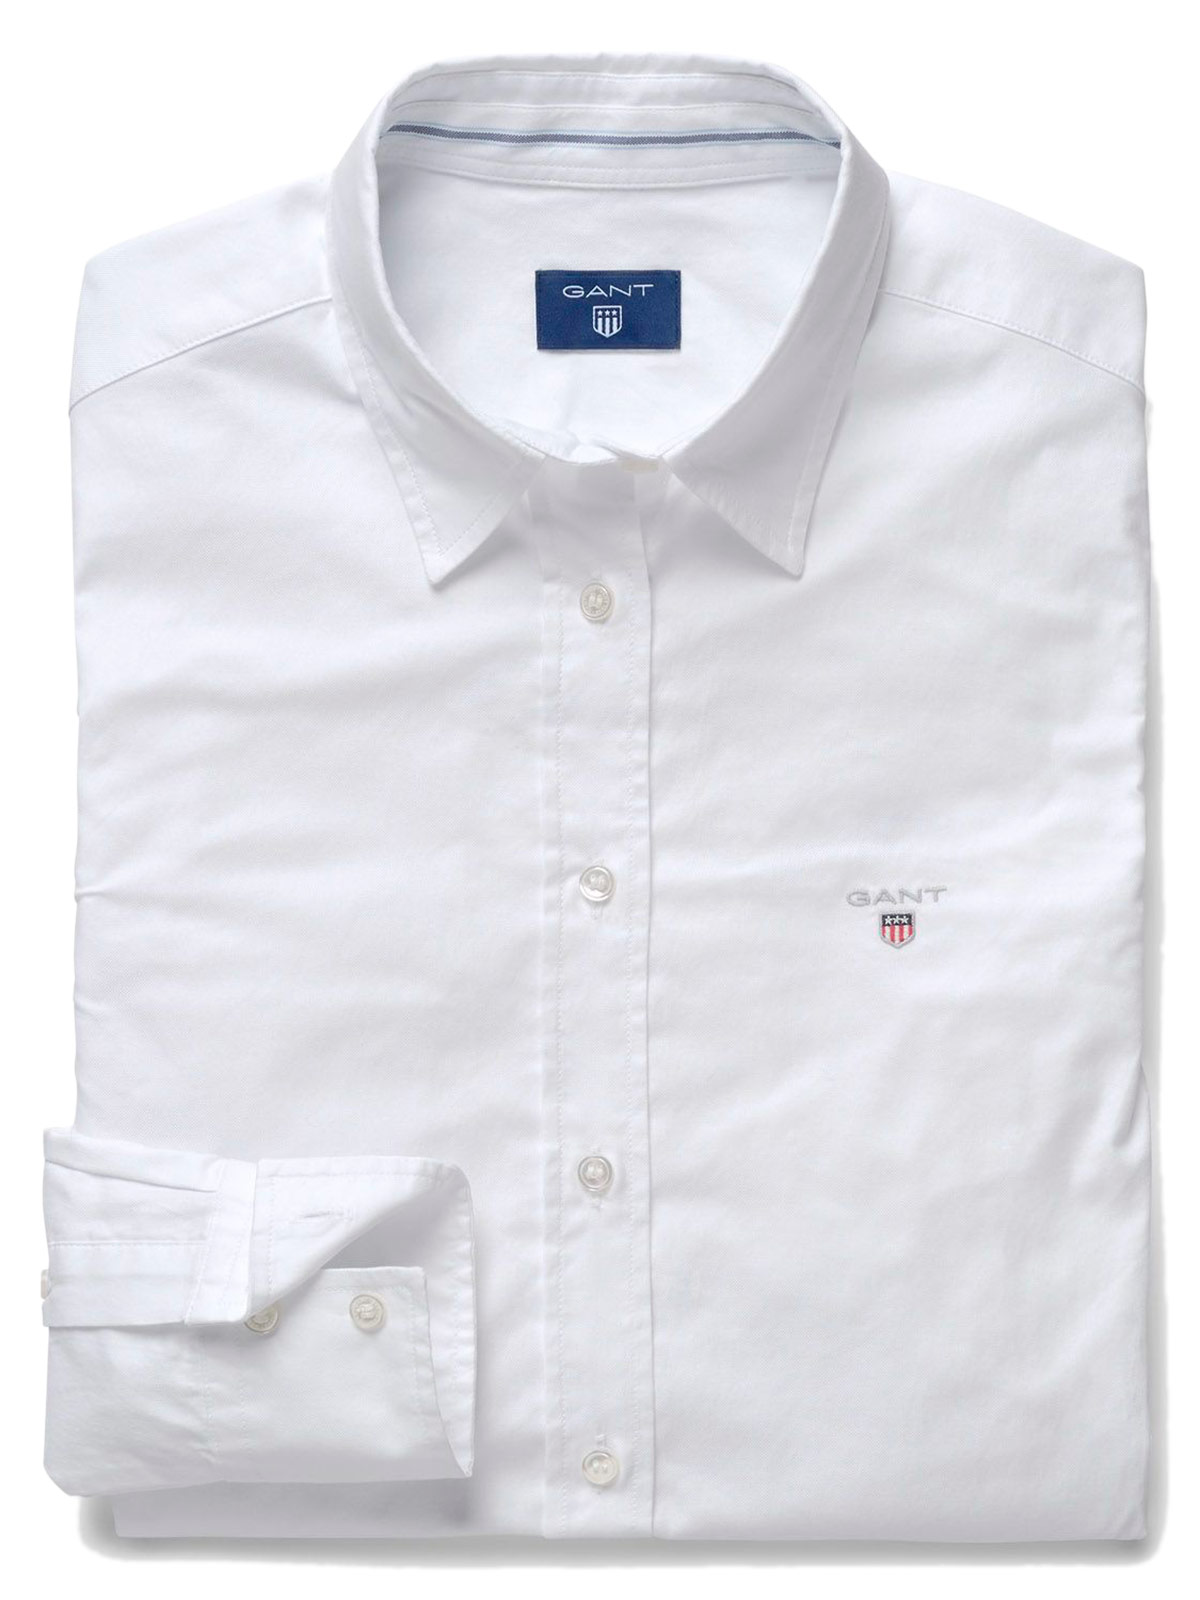 Picture of GANT | Women's Solid Stretch Shirt